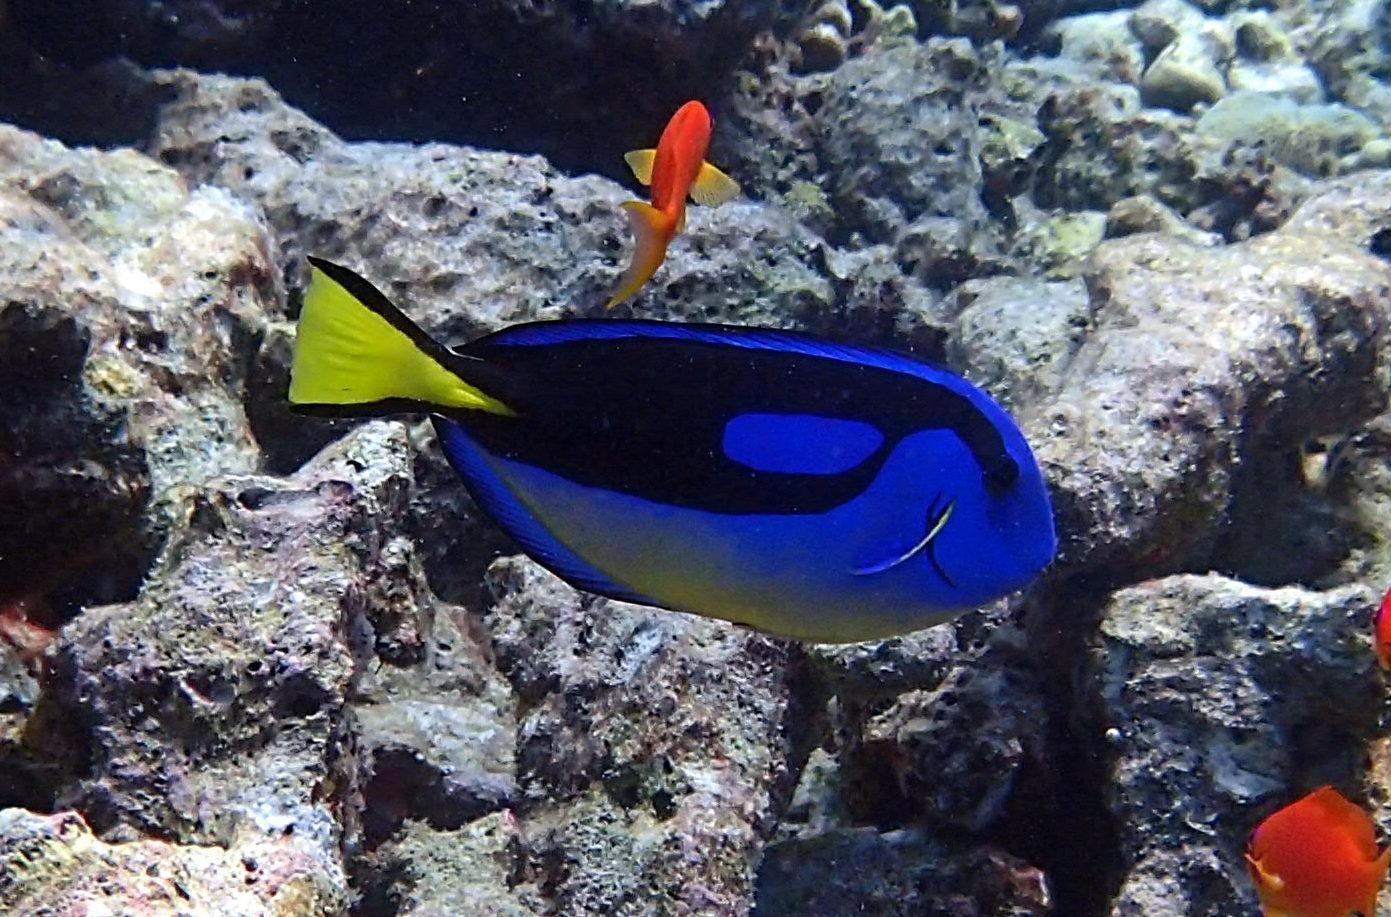 https://upload.wikimedia.org/wikipedia/commons/3/37/Paracanthurus_hepatus_Maldives.JPG